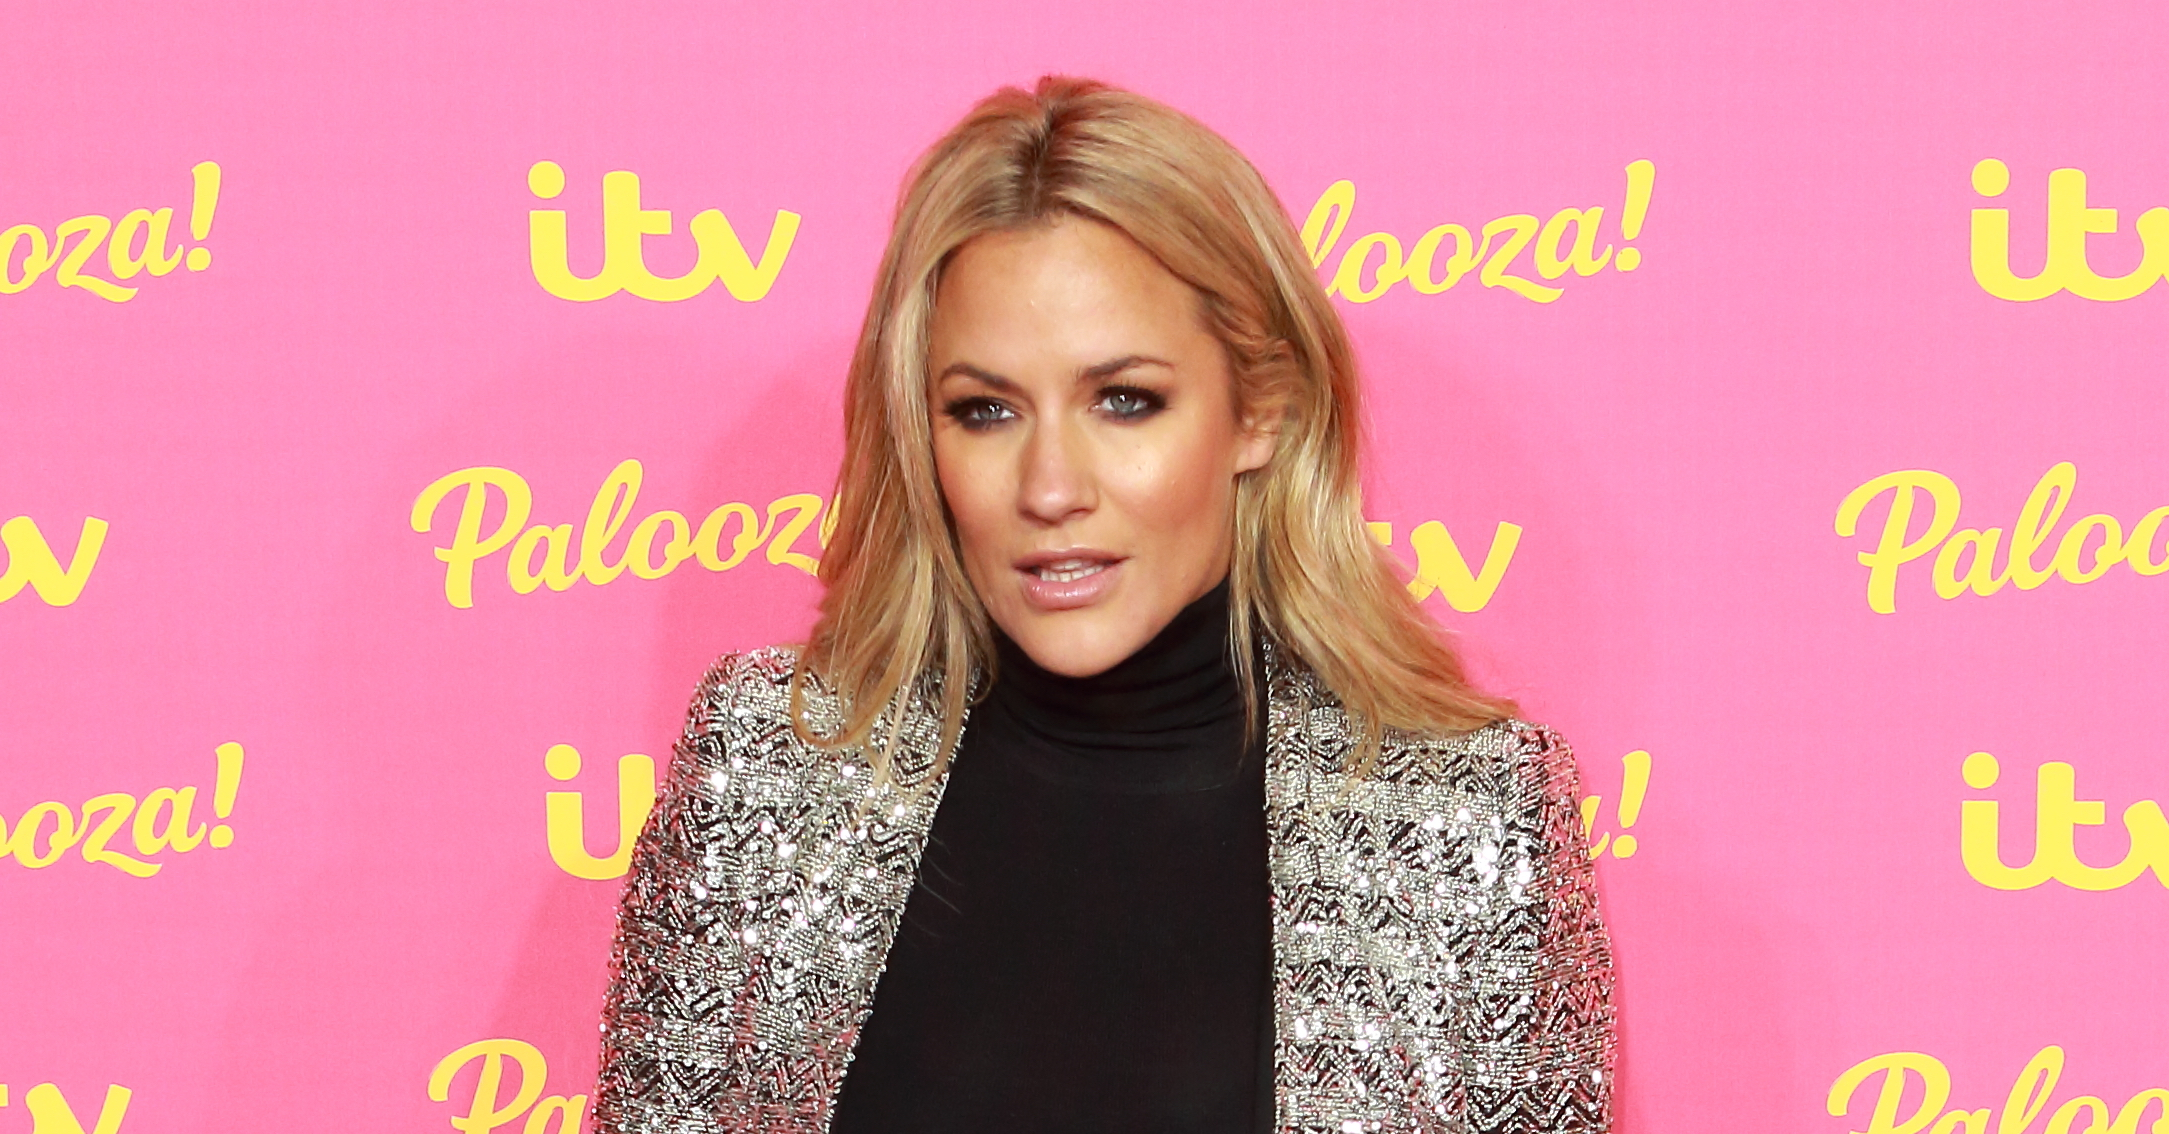 BBC hit with complaints' over the coverage of Caroline Flack's death